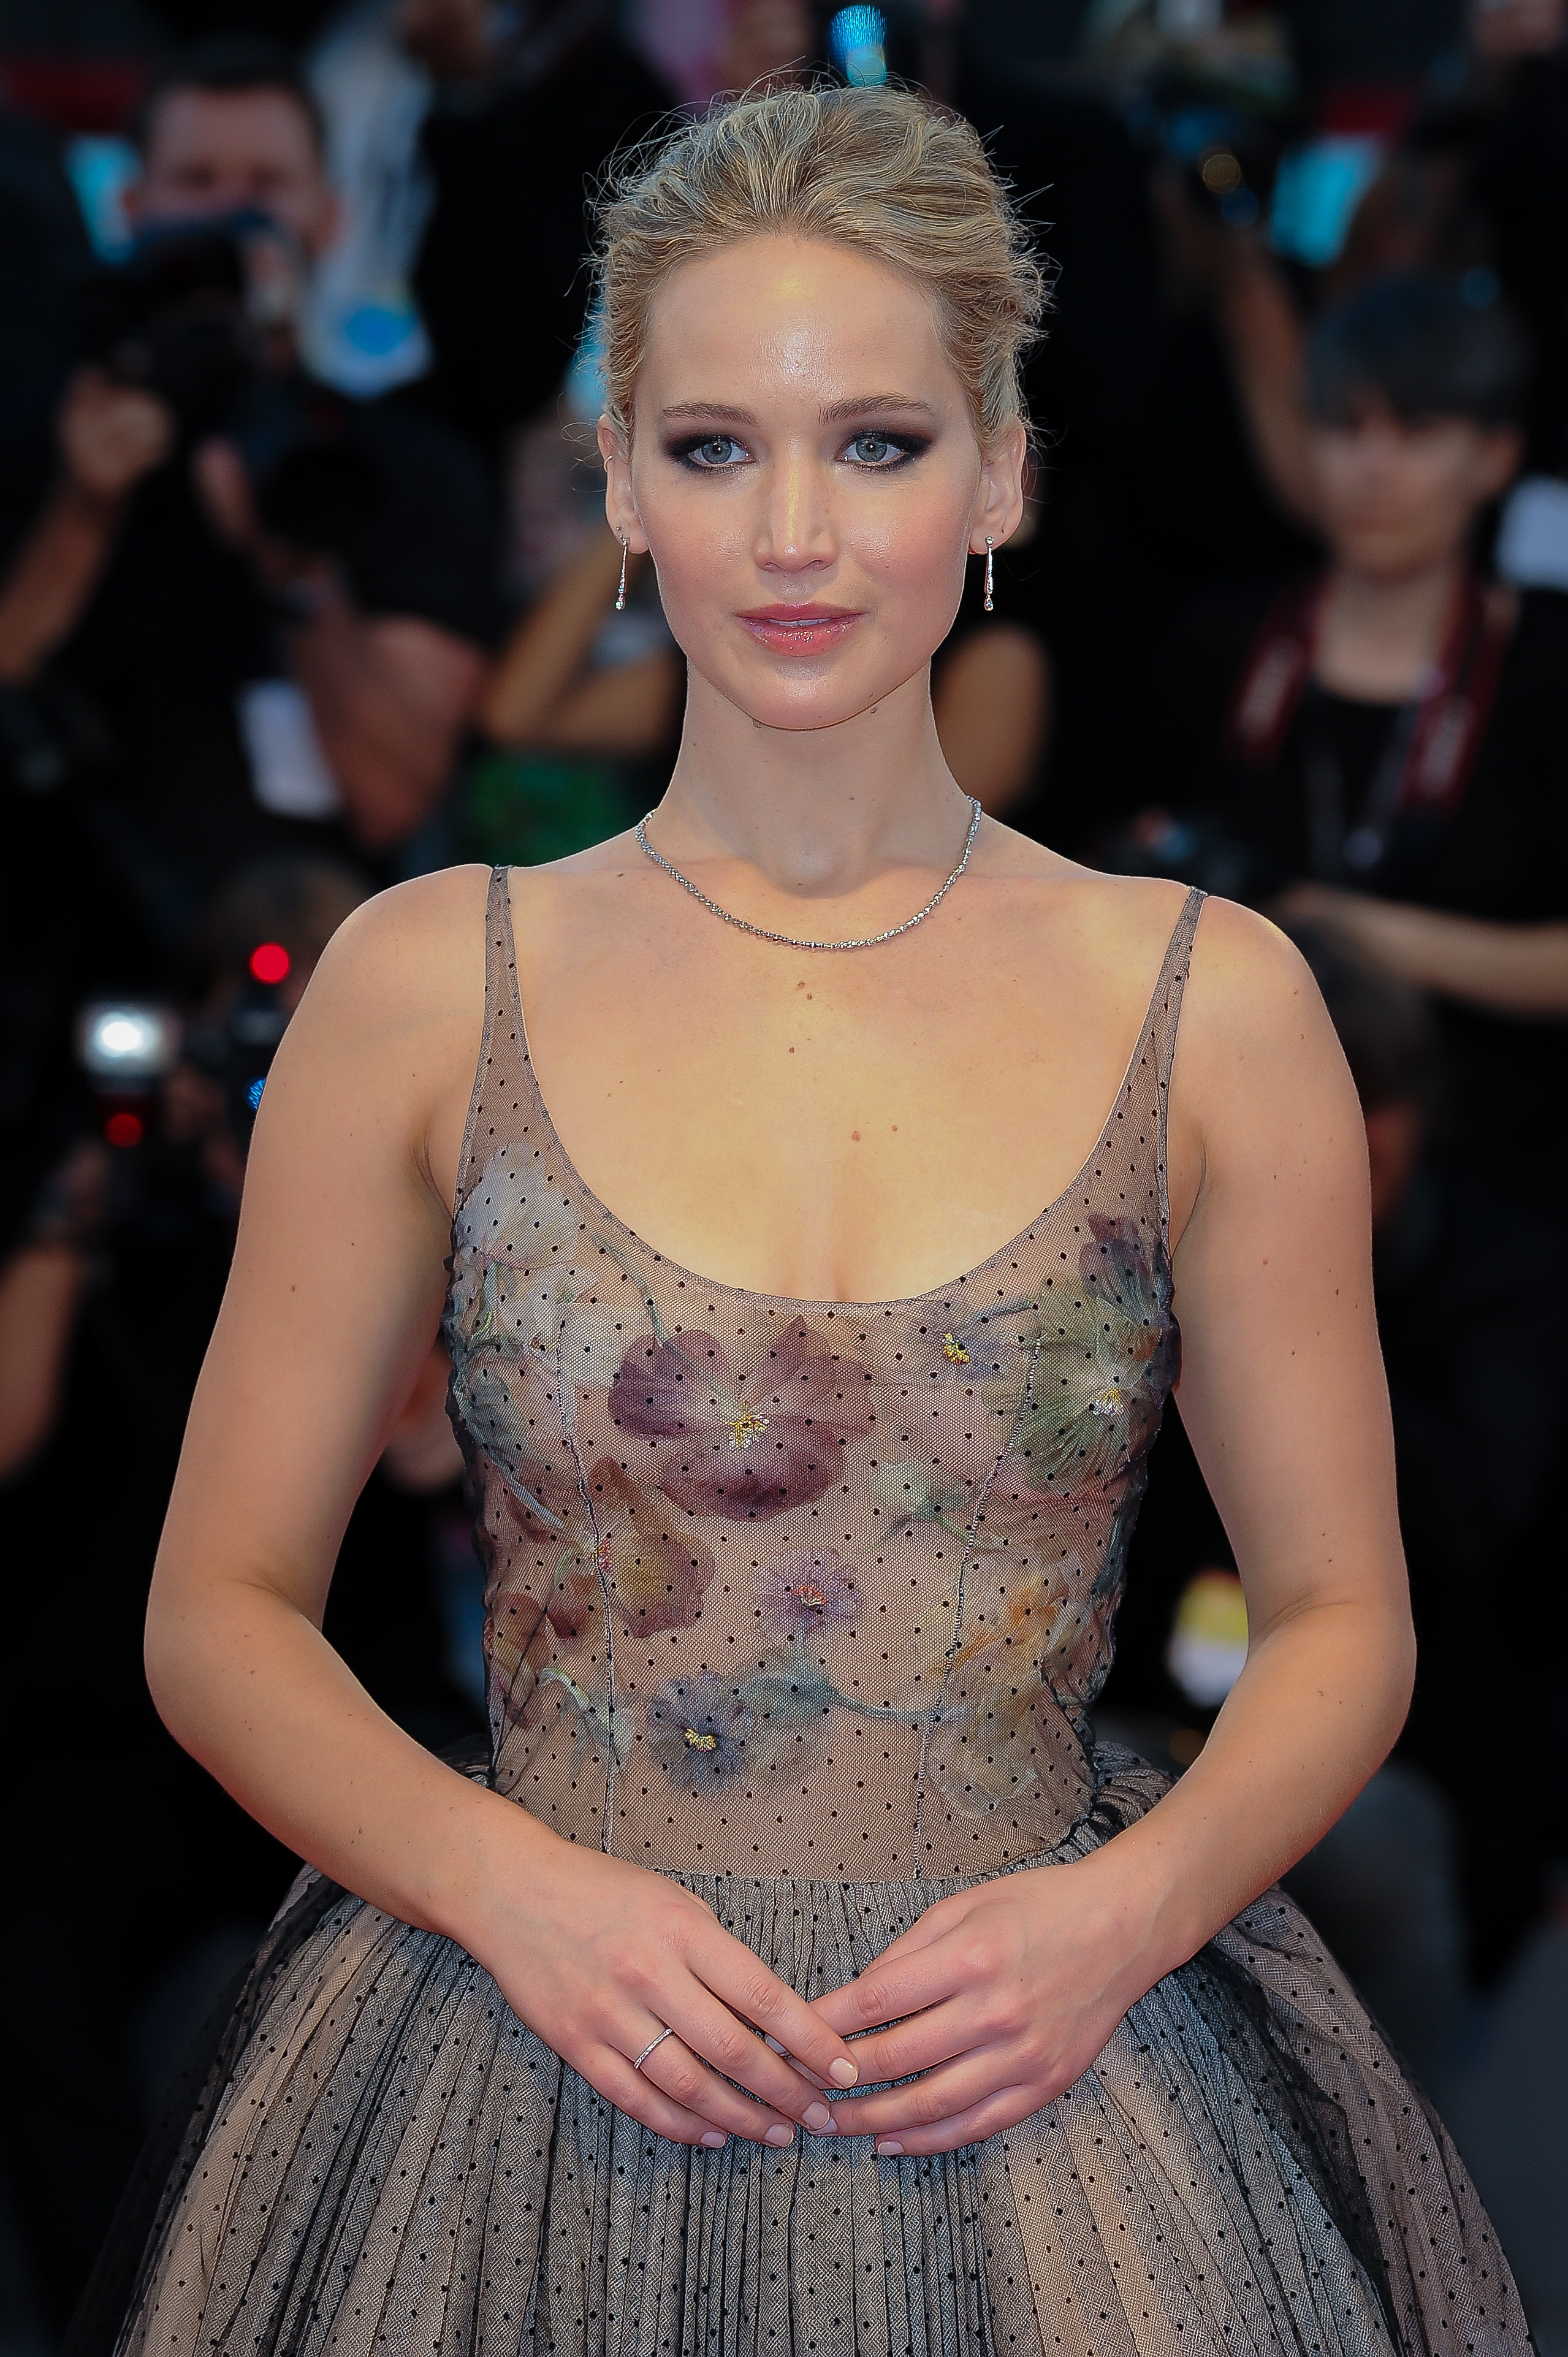 Actress and celebrity Leo Jennifer Lawrence walked the red carpet.